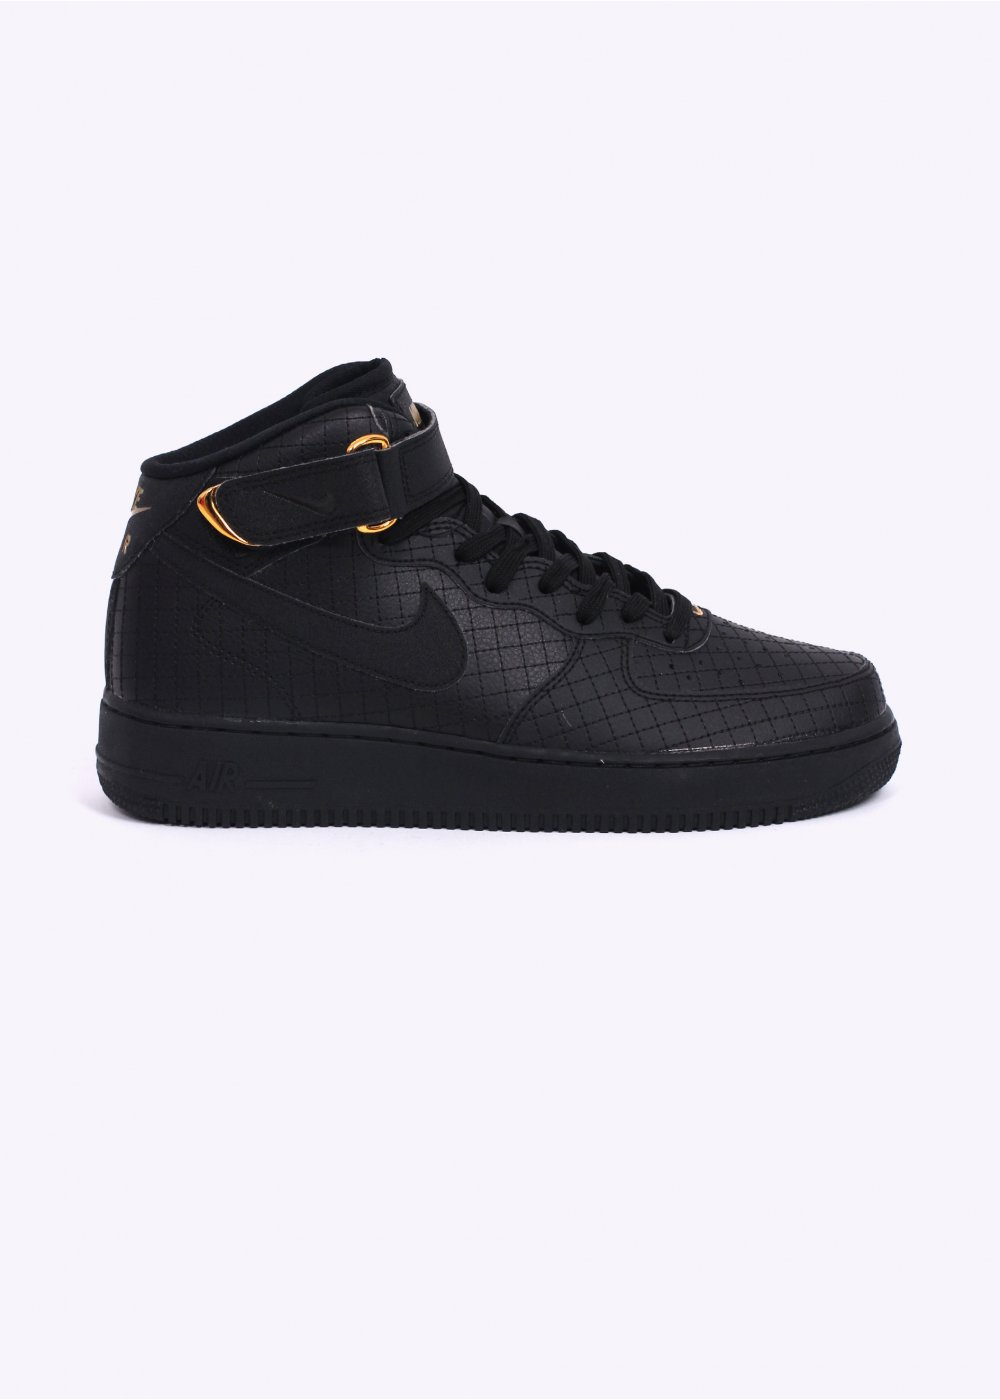 Air Force 1 Mid '07 LV8 Trainers - Black / Black